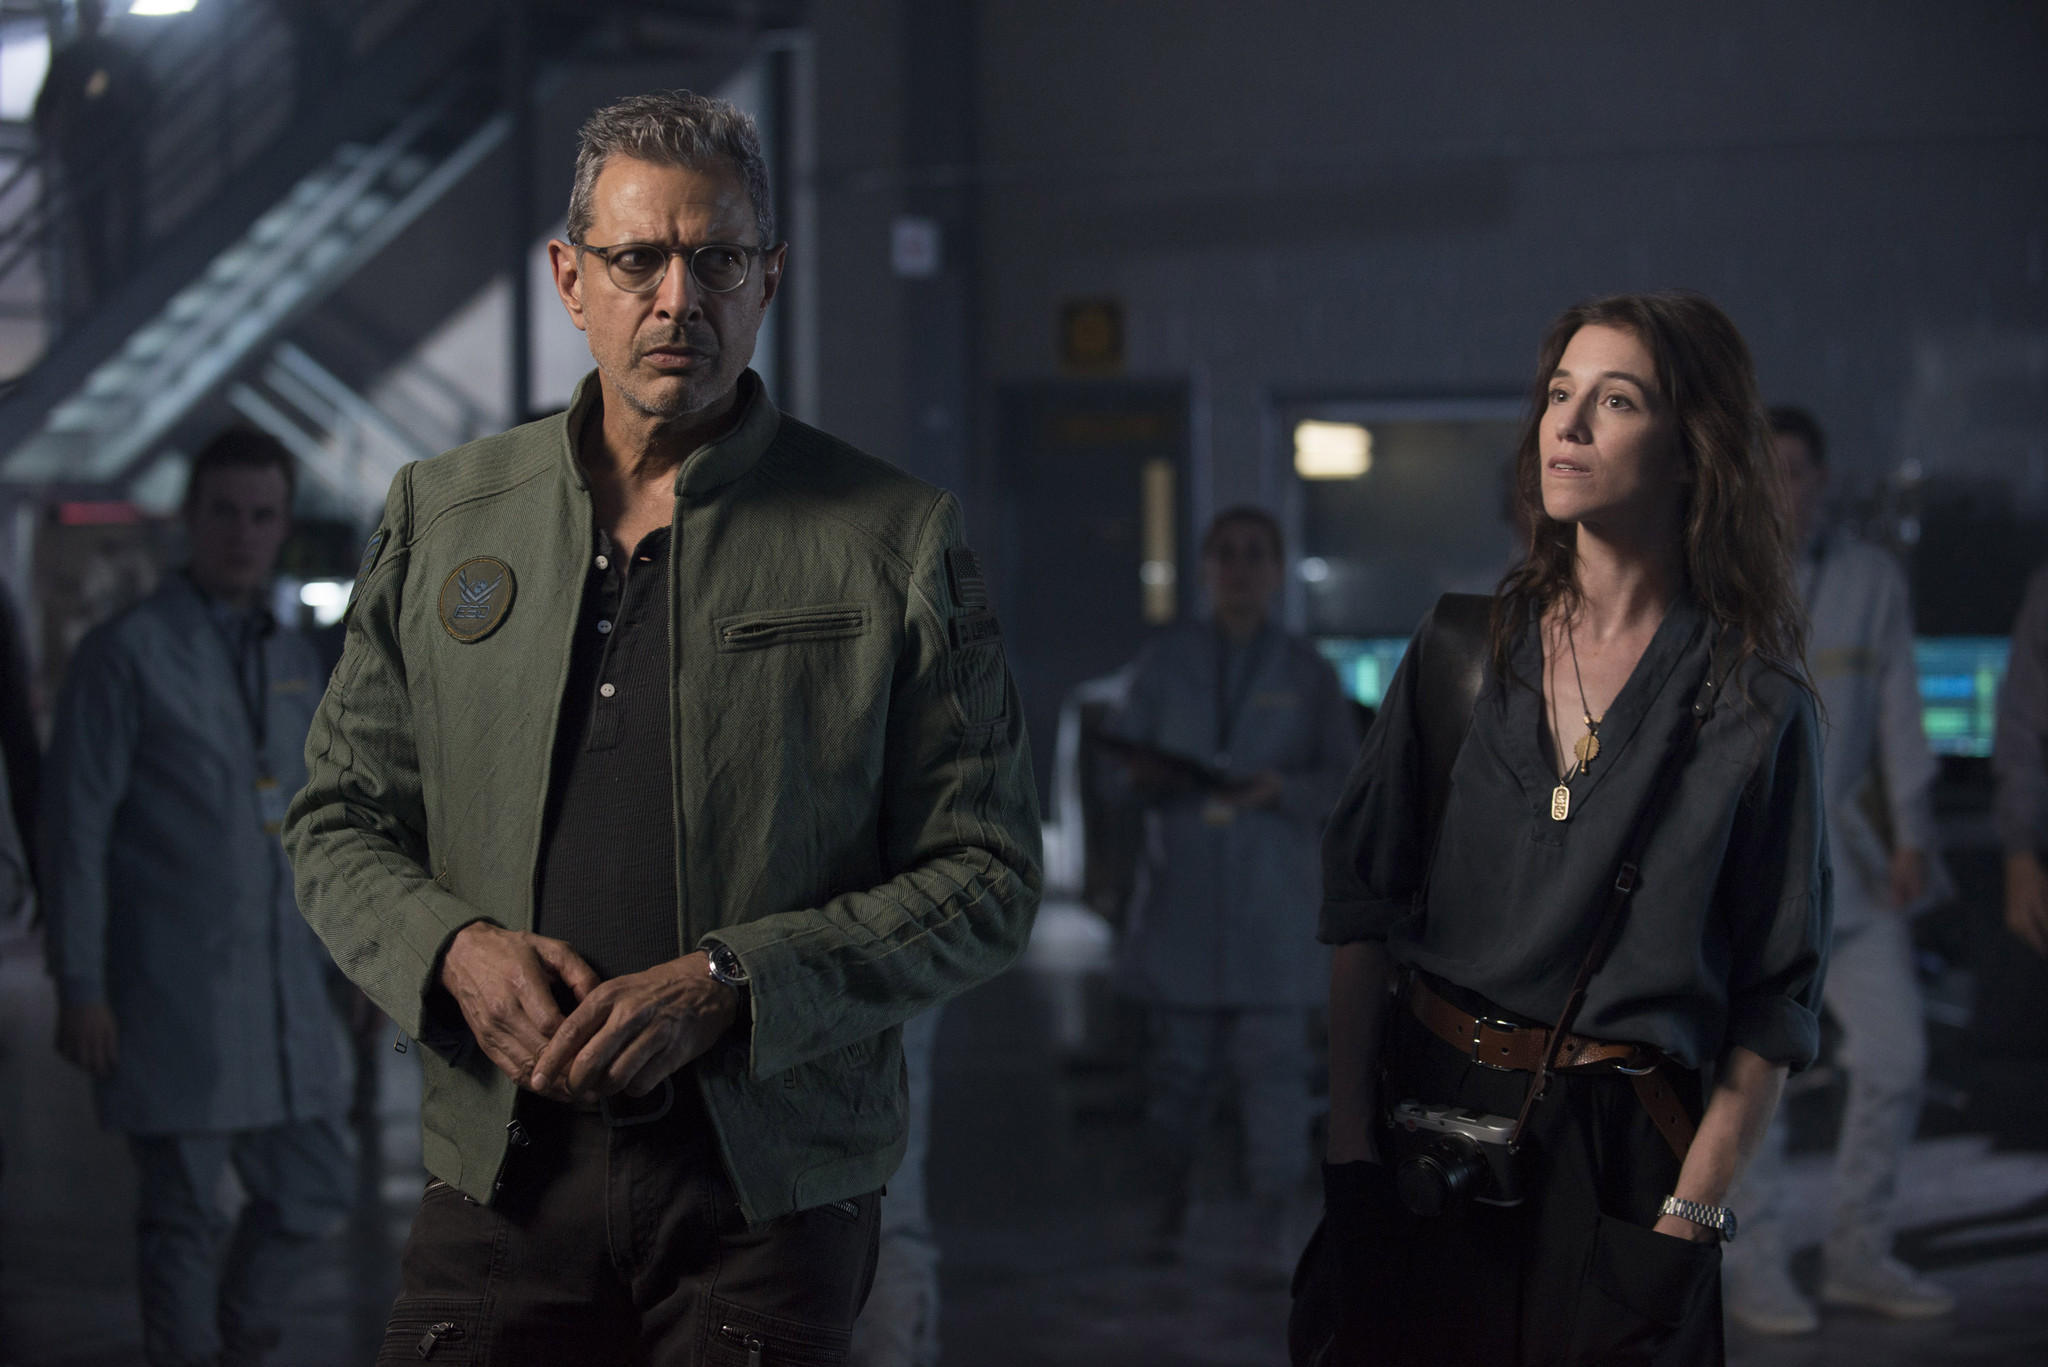 http://www.trbimg.com/img-577291f6/turbine/la-et-mn-independence-day-resurgence-review-20160620-snap